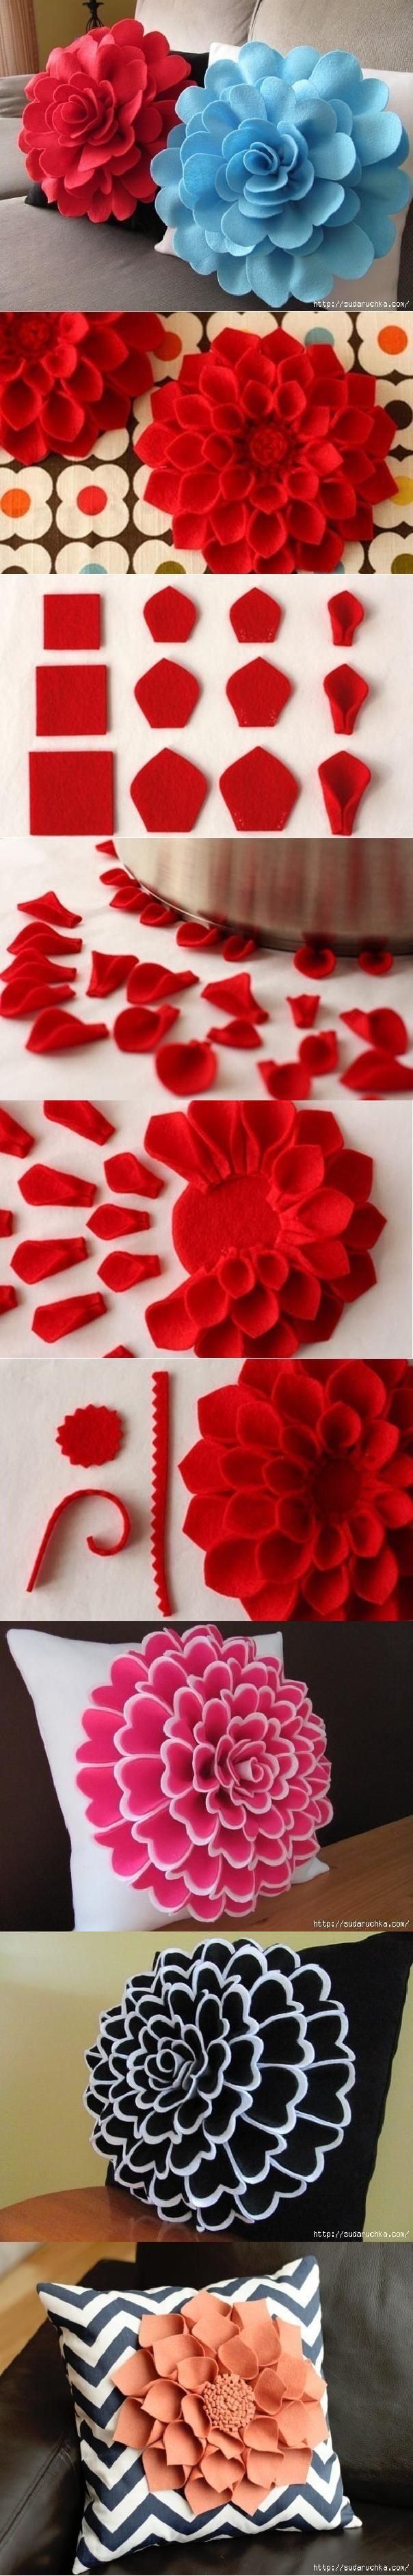 DIY Decorative Felt Flower Pillow DIY Decorative Felt Flower Pillow